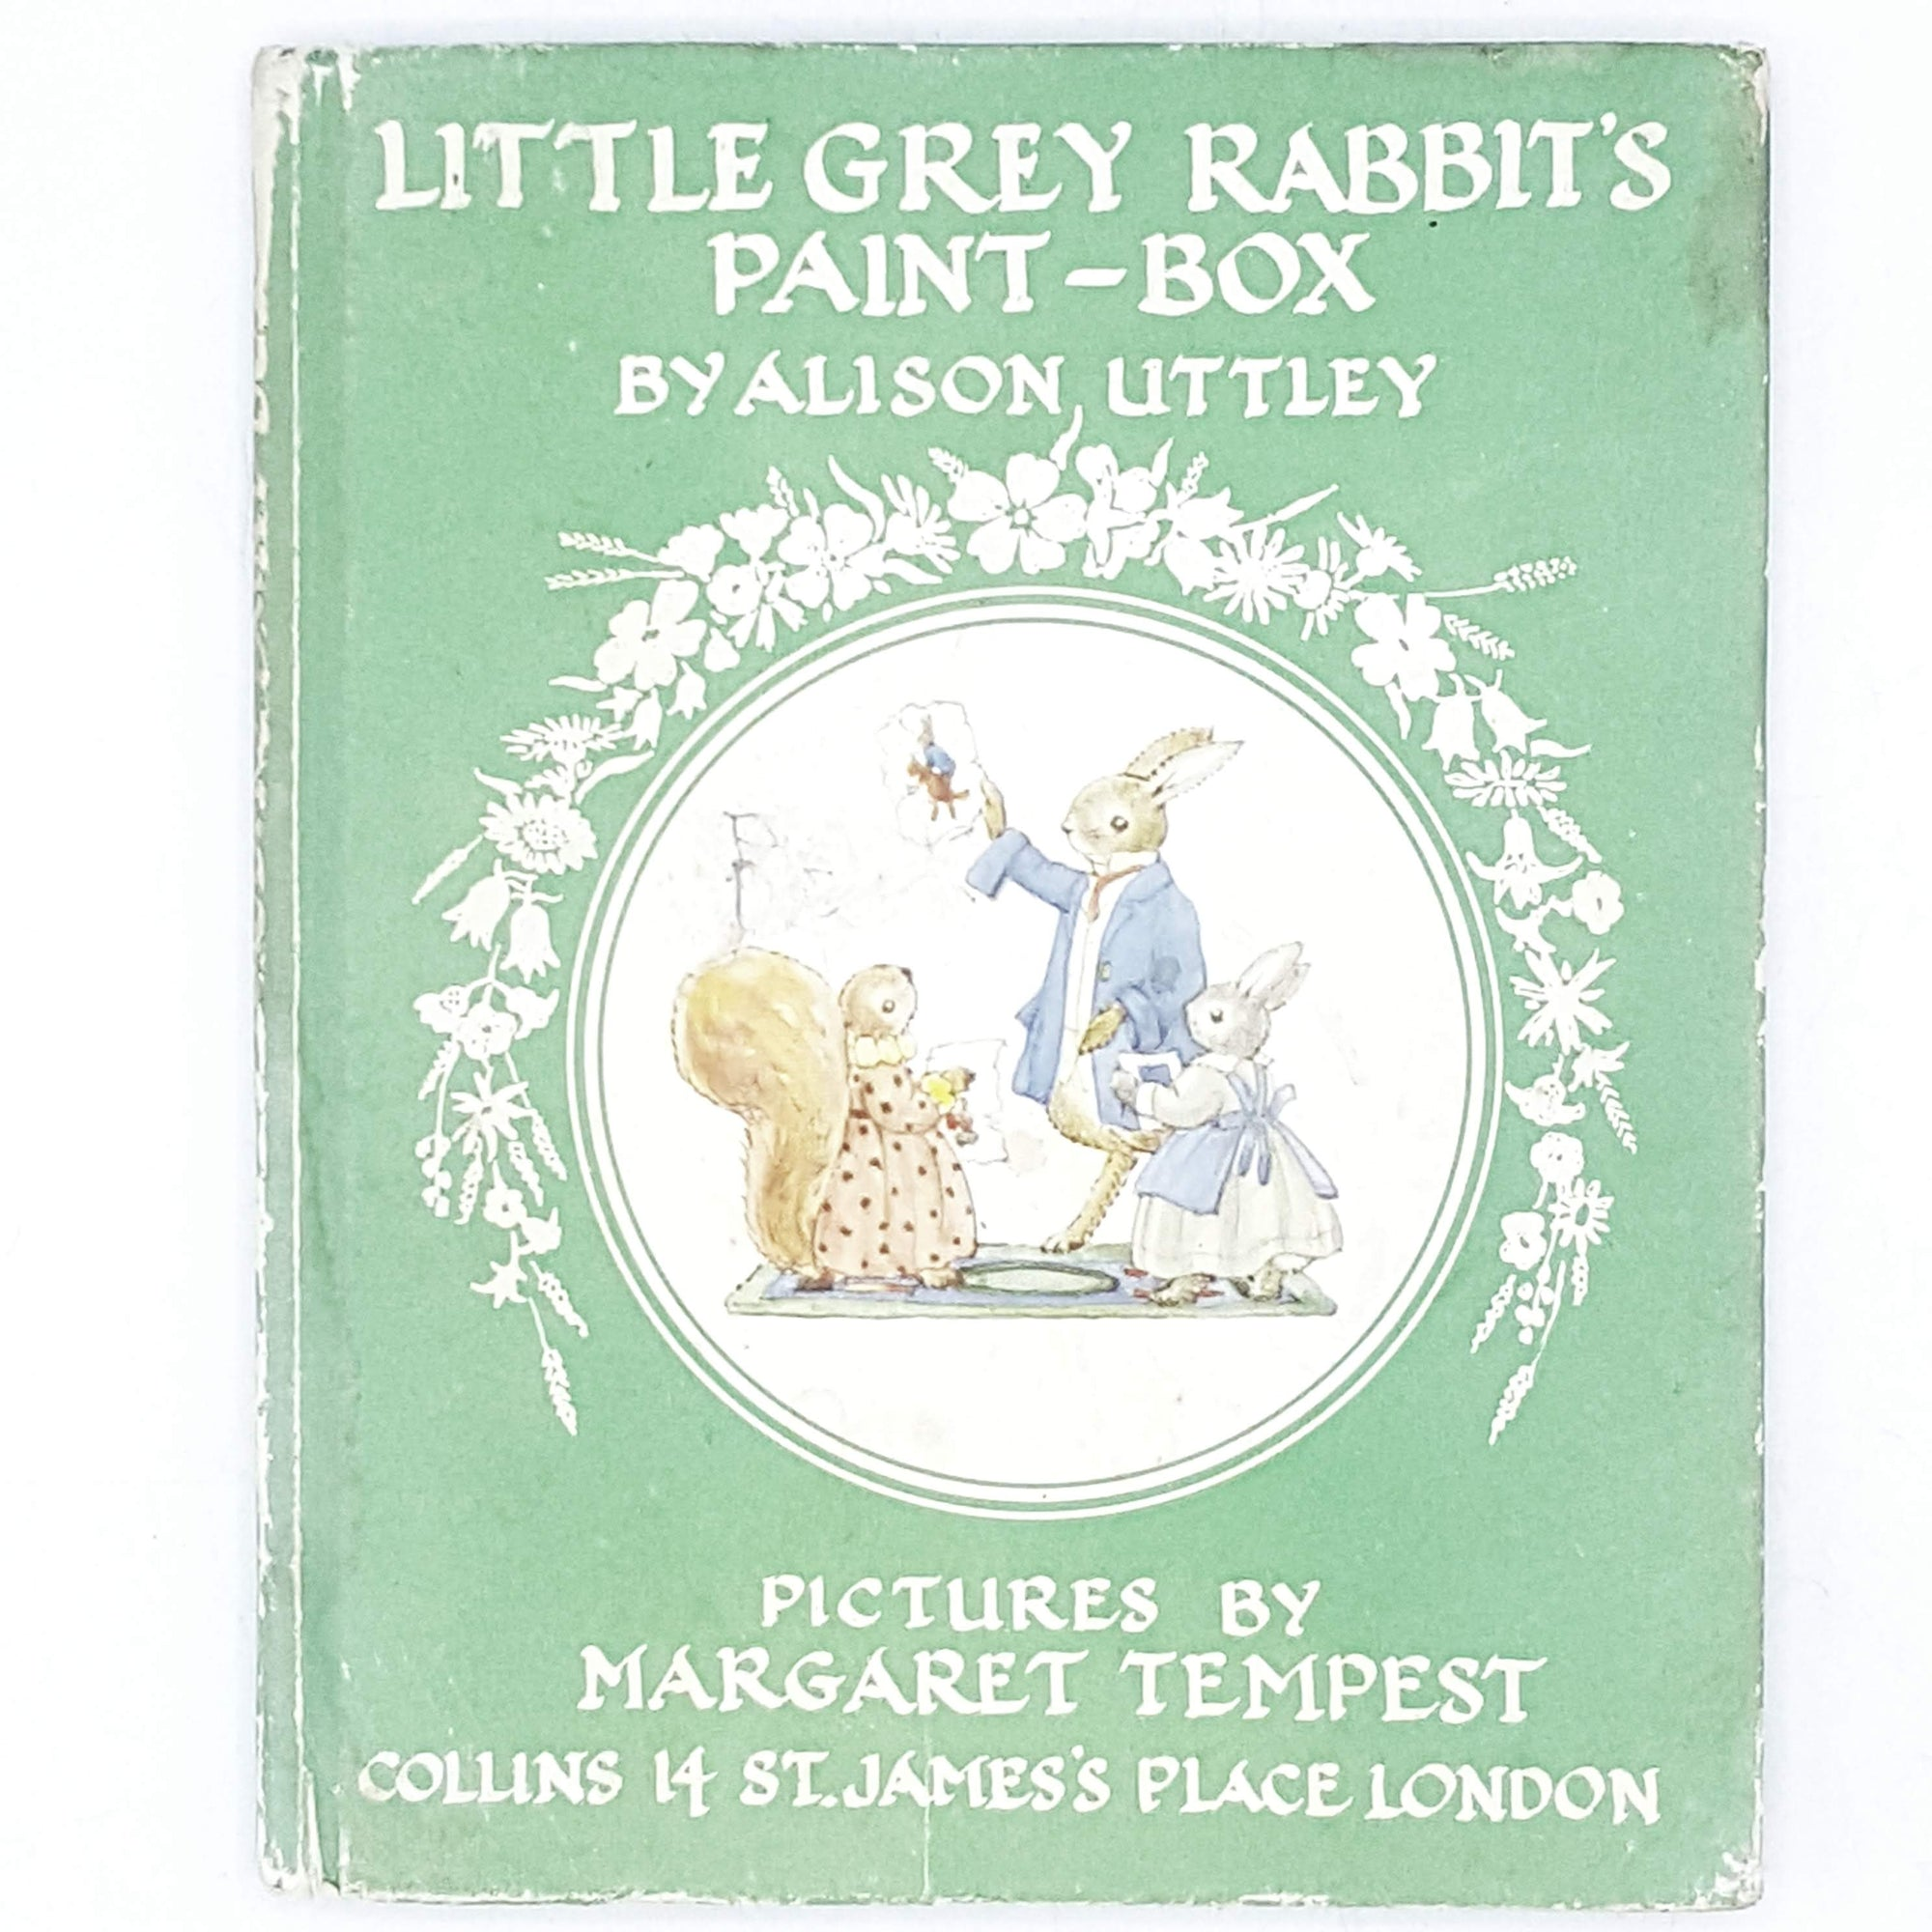 First Edition Little Grey Rabbit's Paint-Box by Alison Uttley 1958